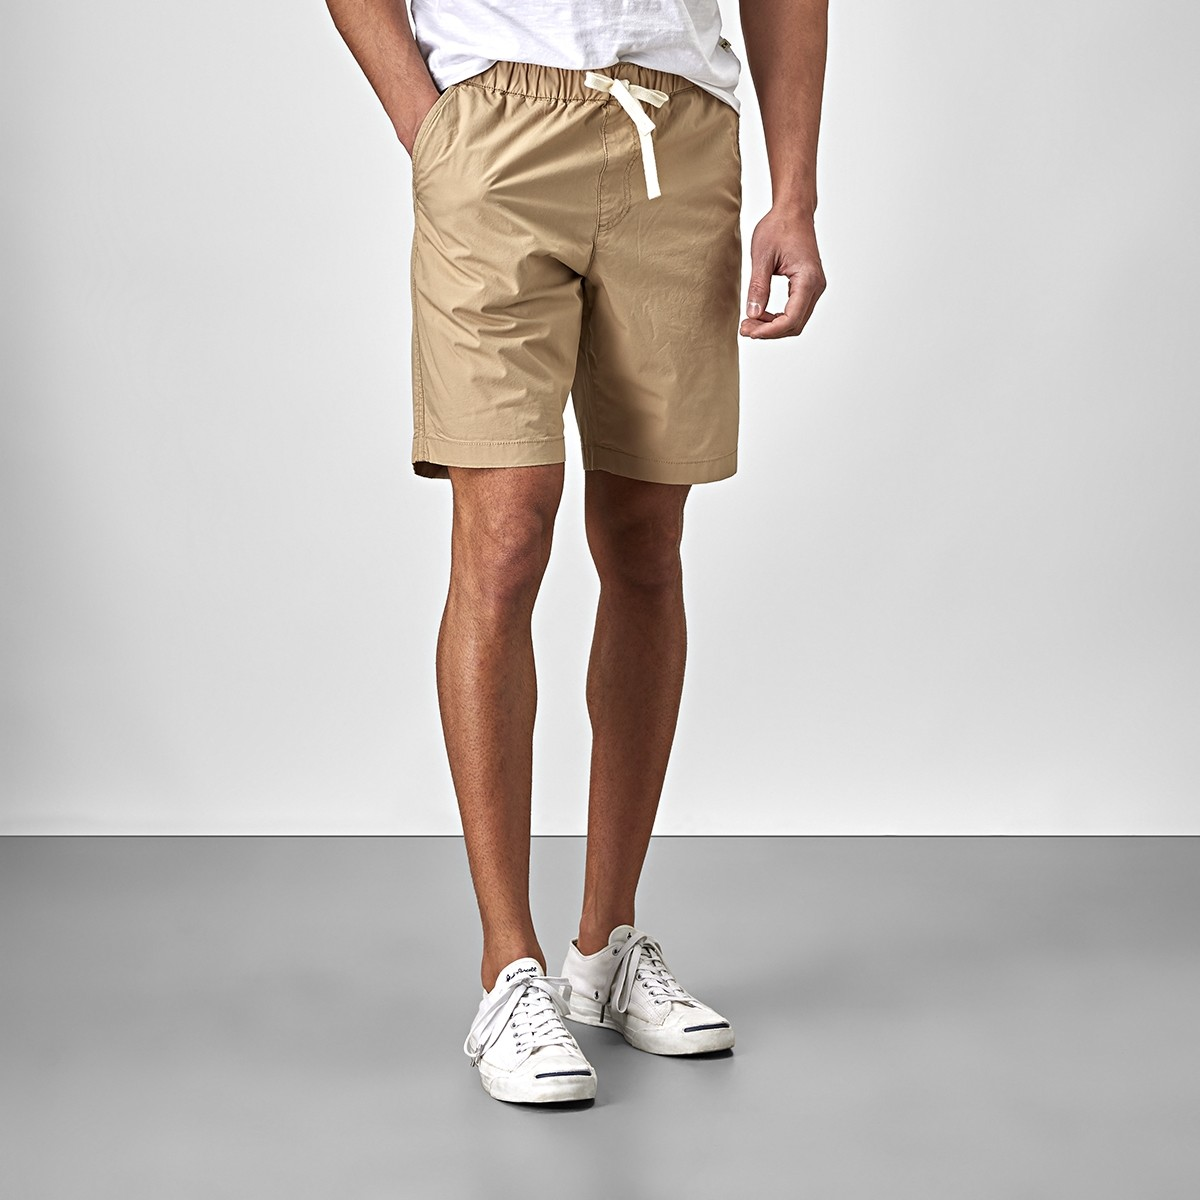 Breeze Shorts Beige   East West   Brothers.se